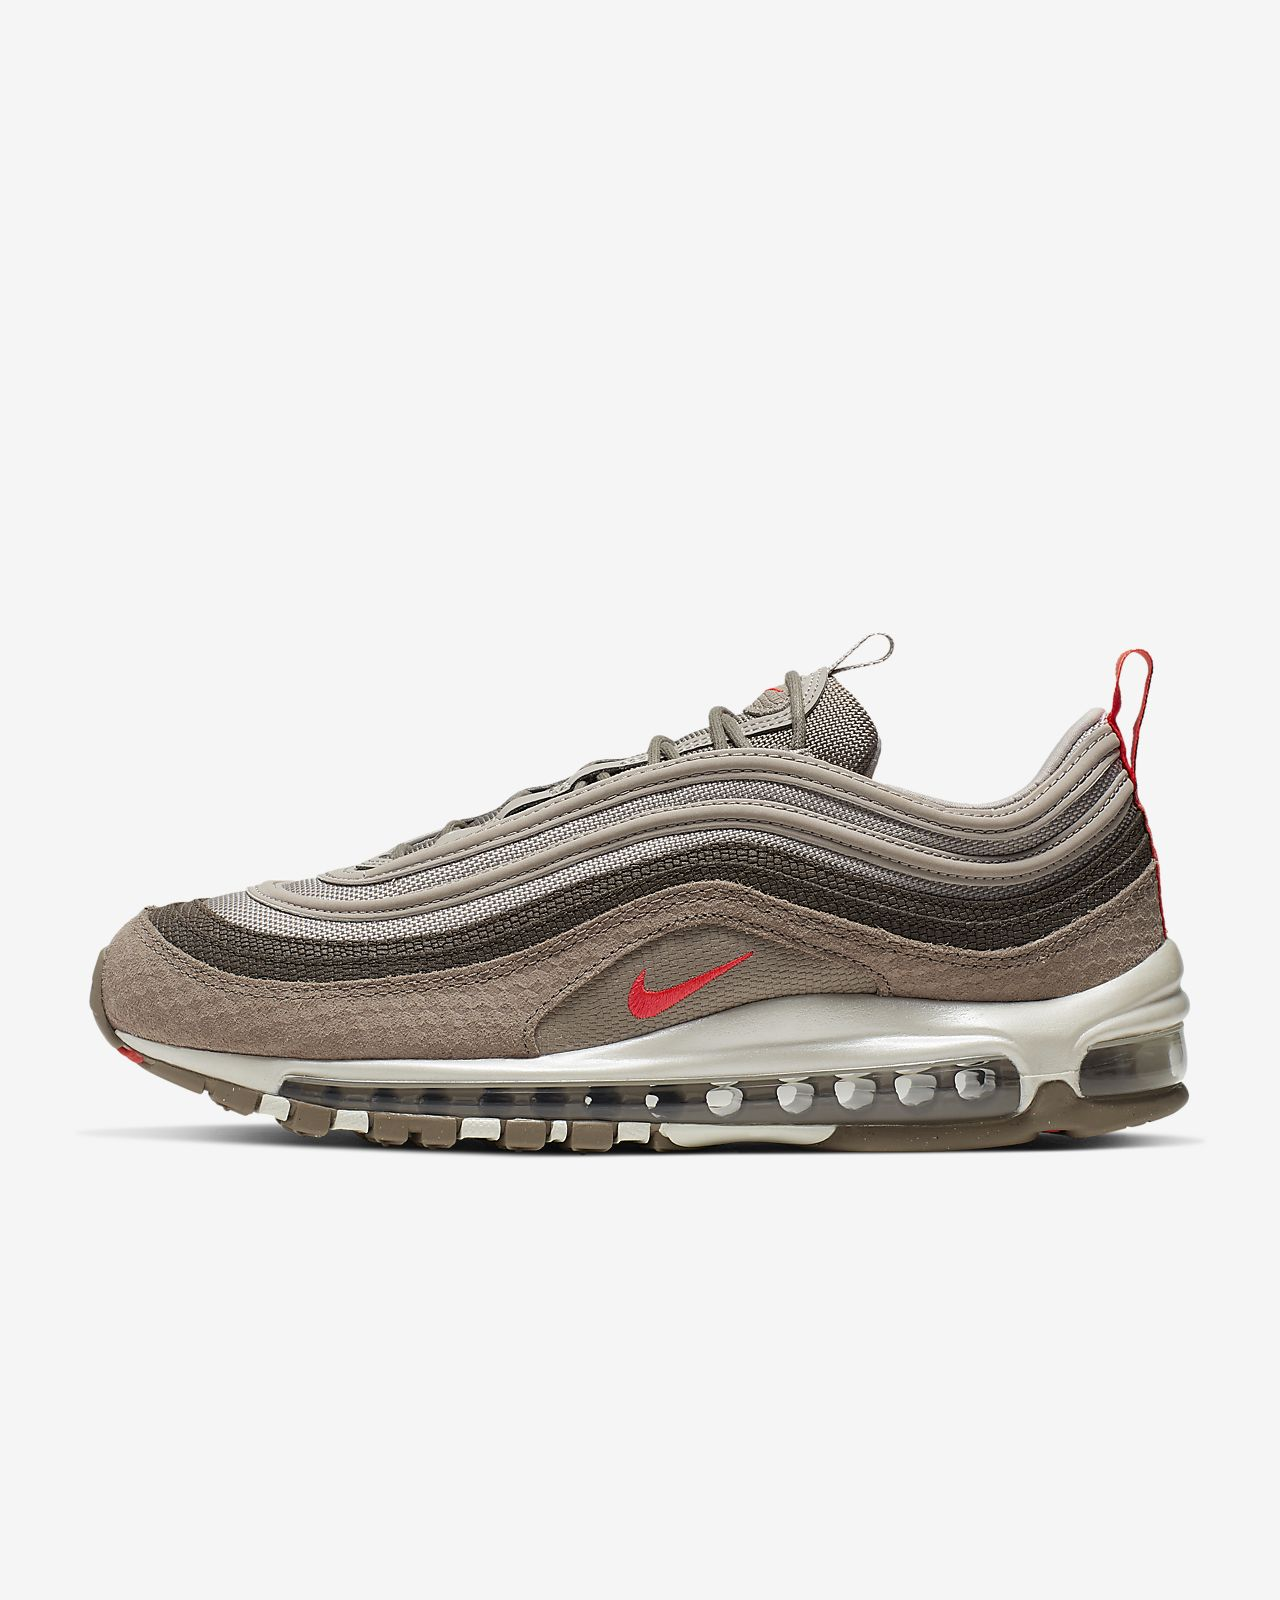 low priced bdeda fd286 Men s Shoe. Nike Air Max 97 Premium